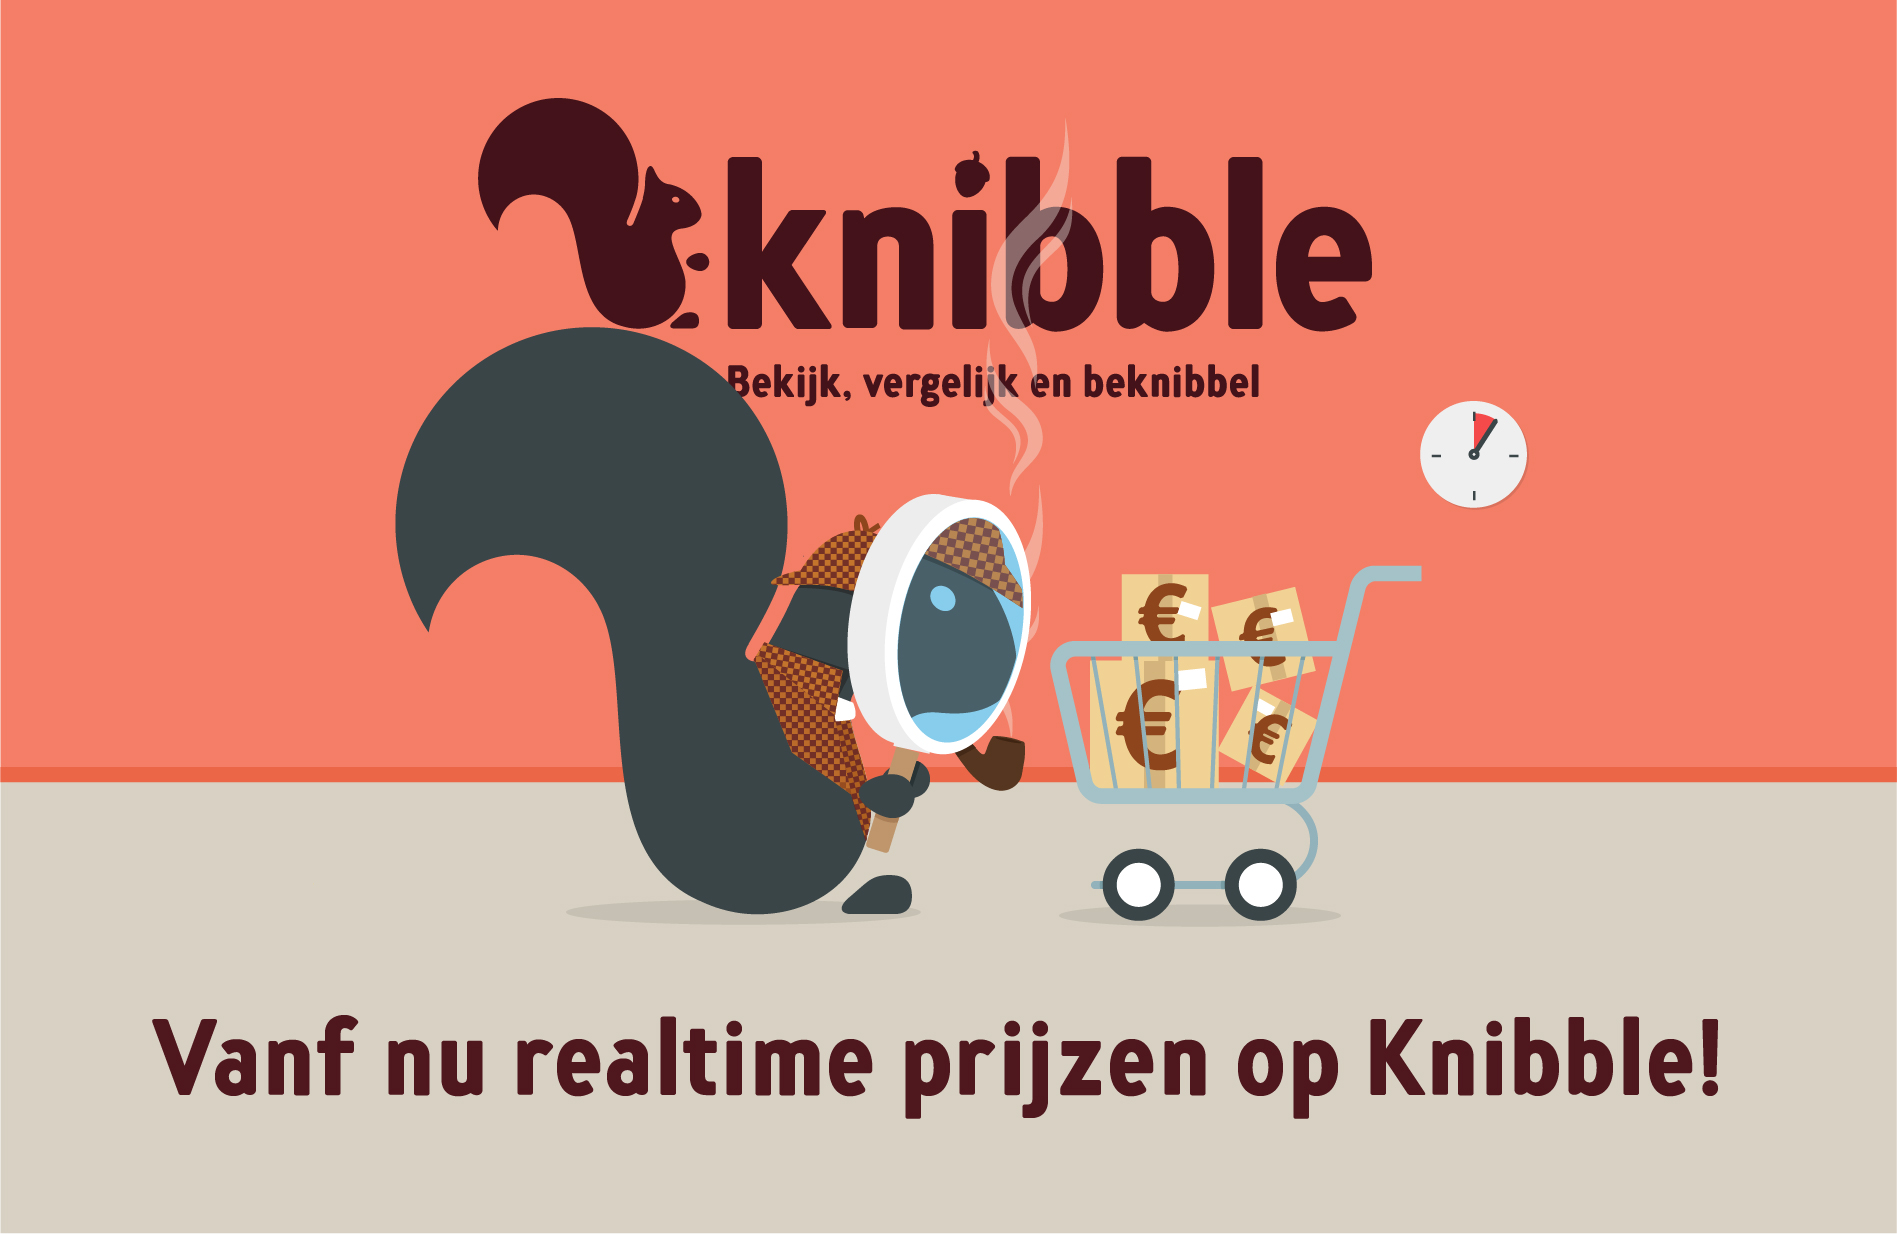 Knibble realtime prijzen